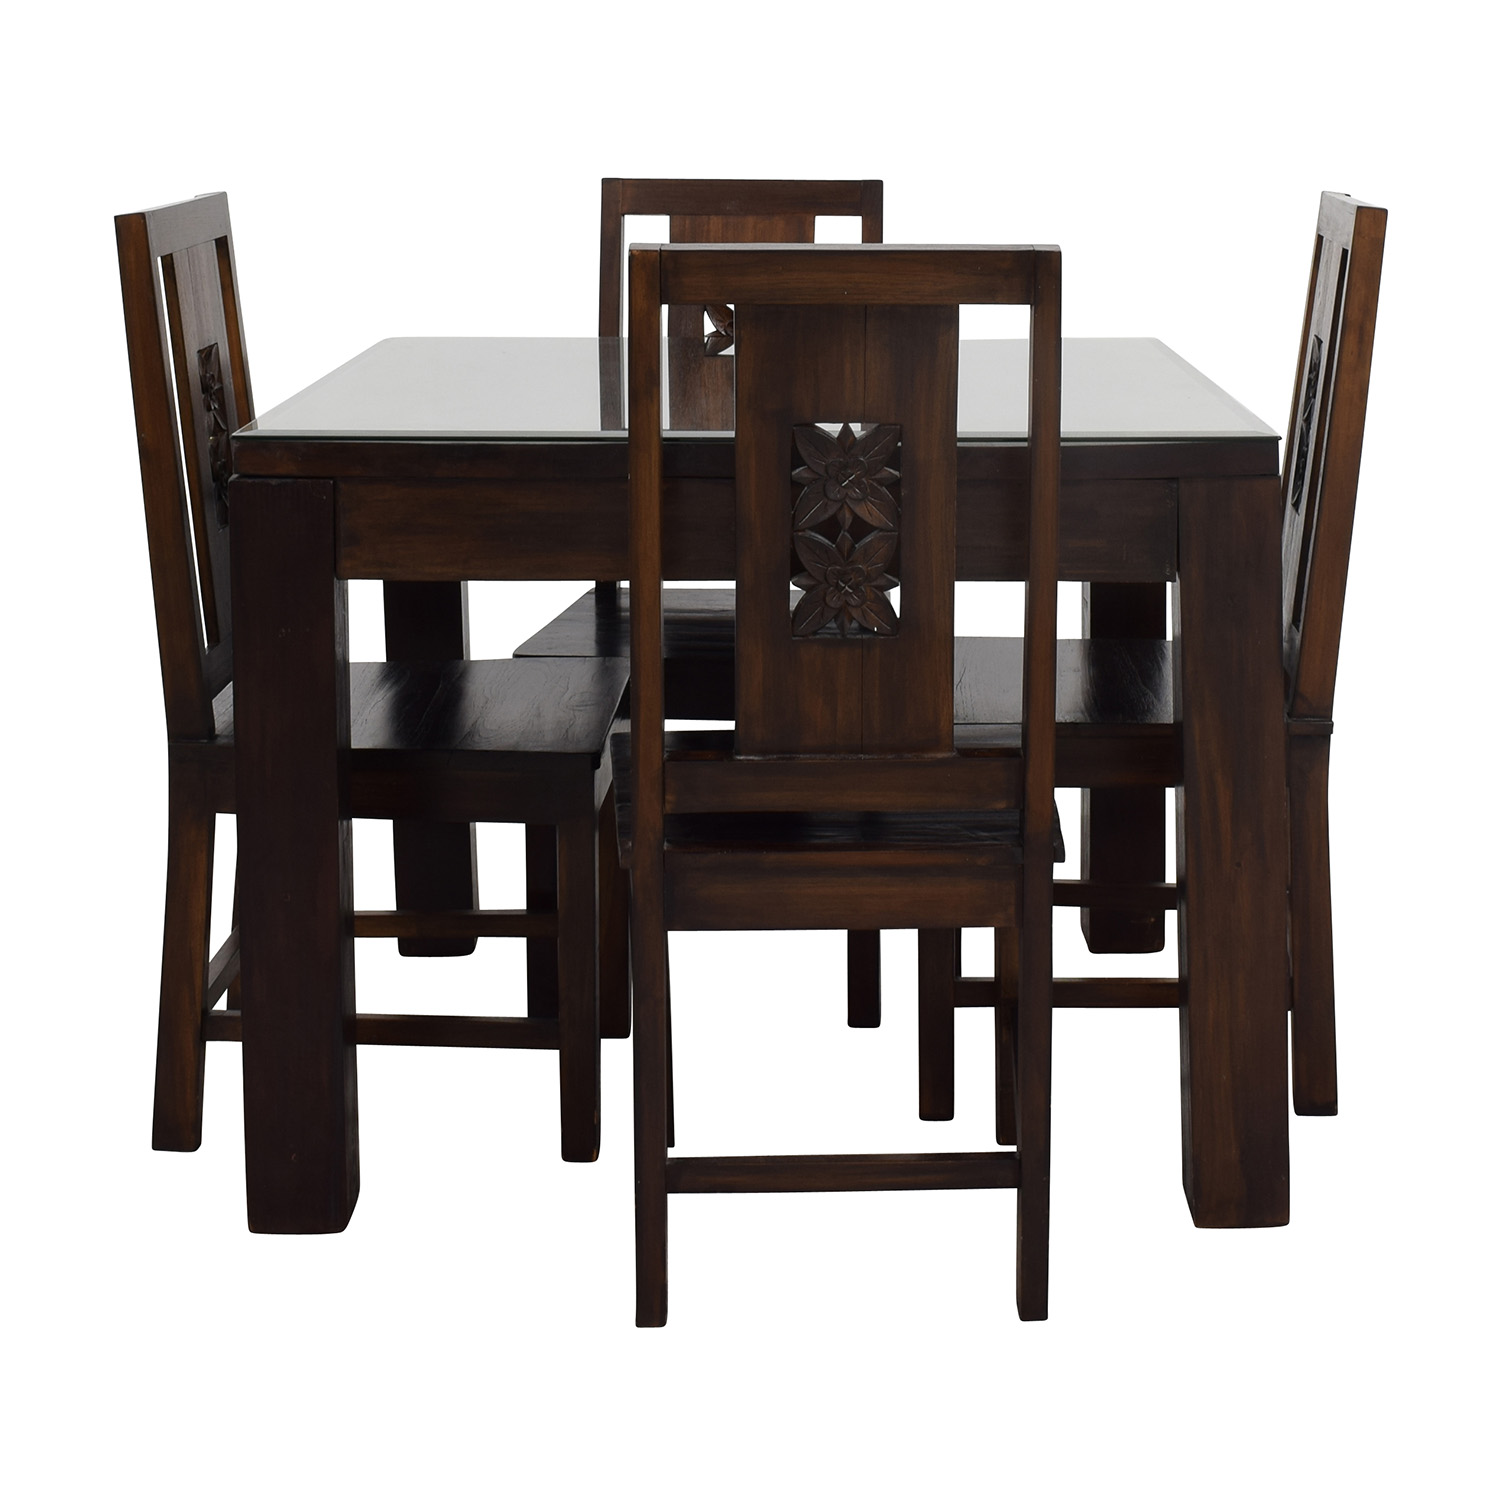 Teak Dining Room Chairs 90 Off Balinese Teak Dining Table Set Tables